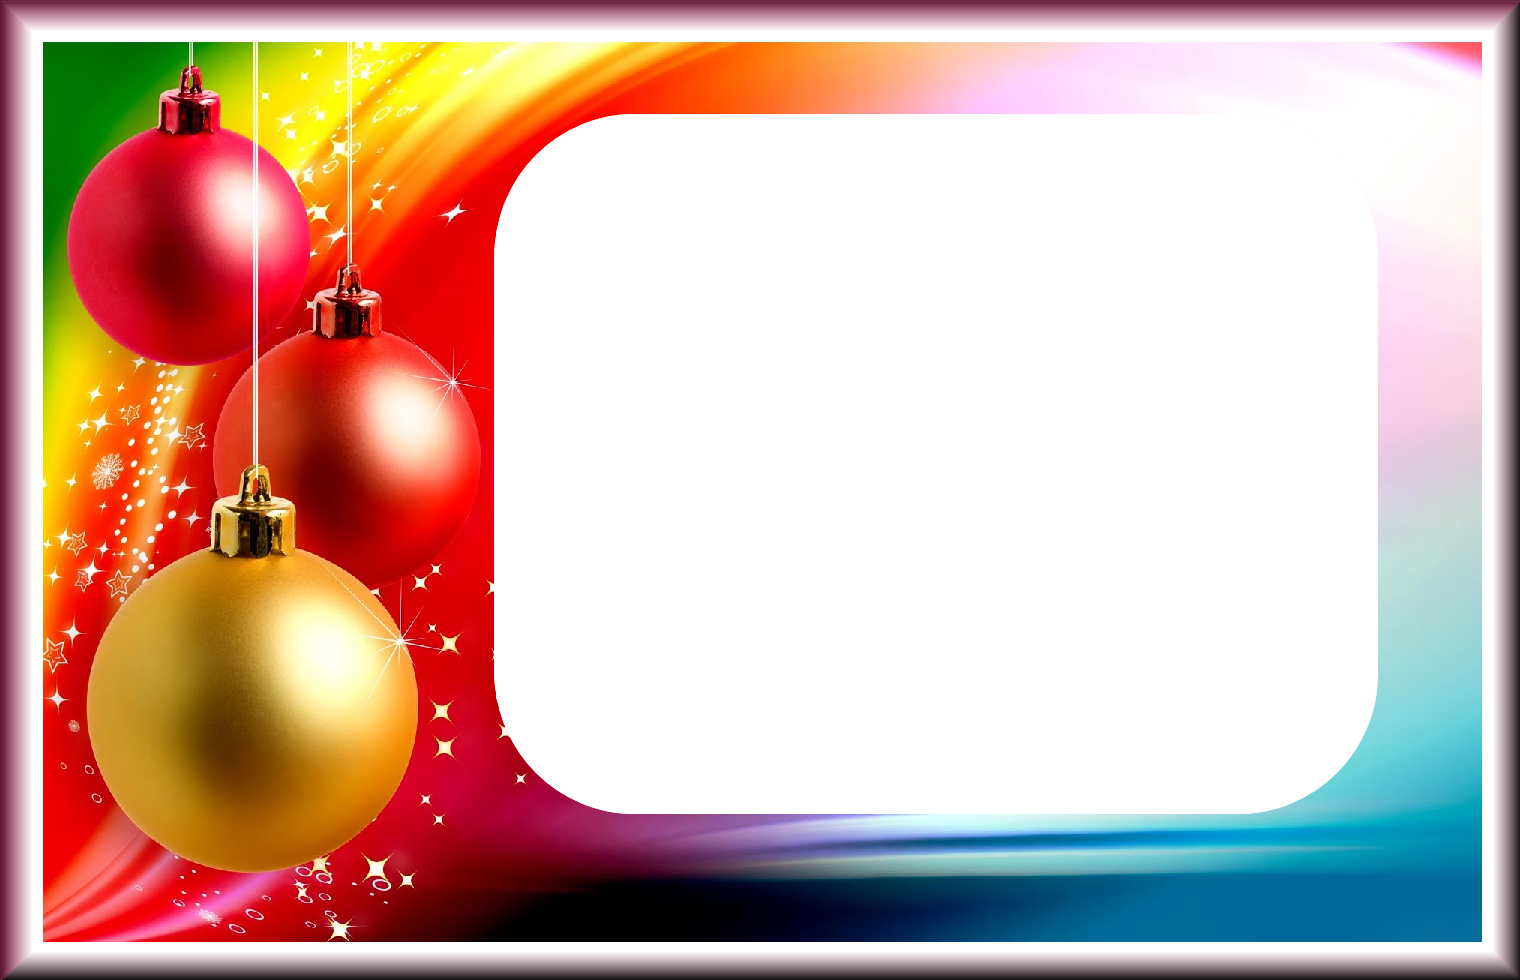 Frame clipart xmas. Download png free icons